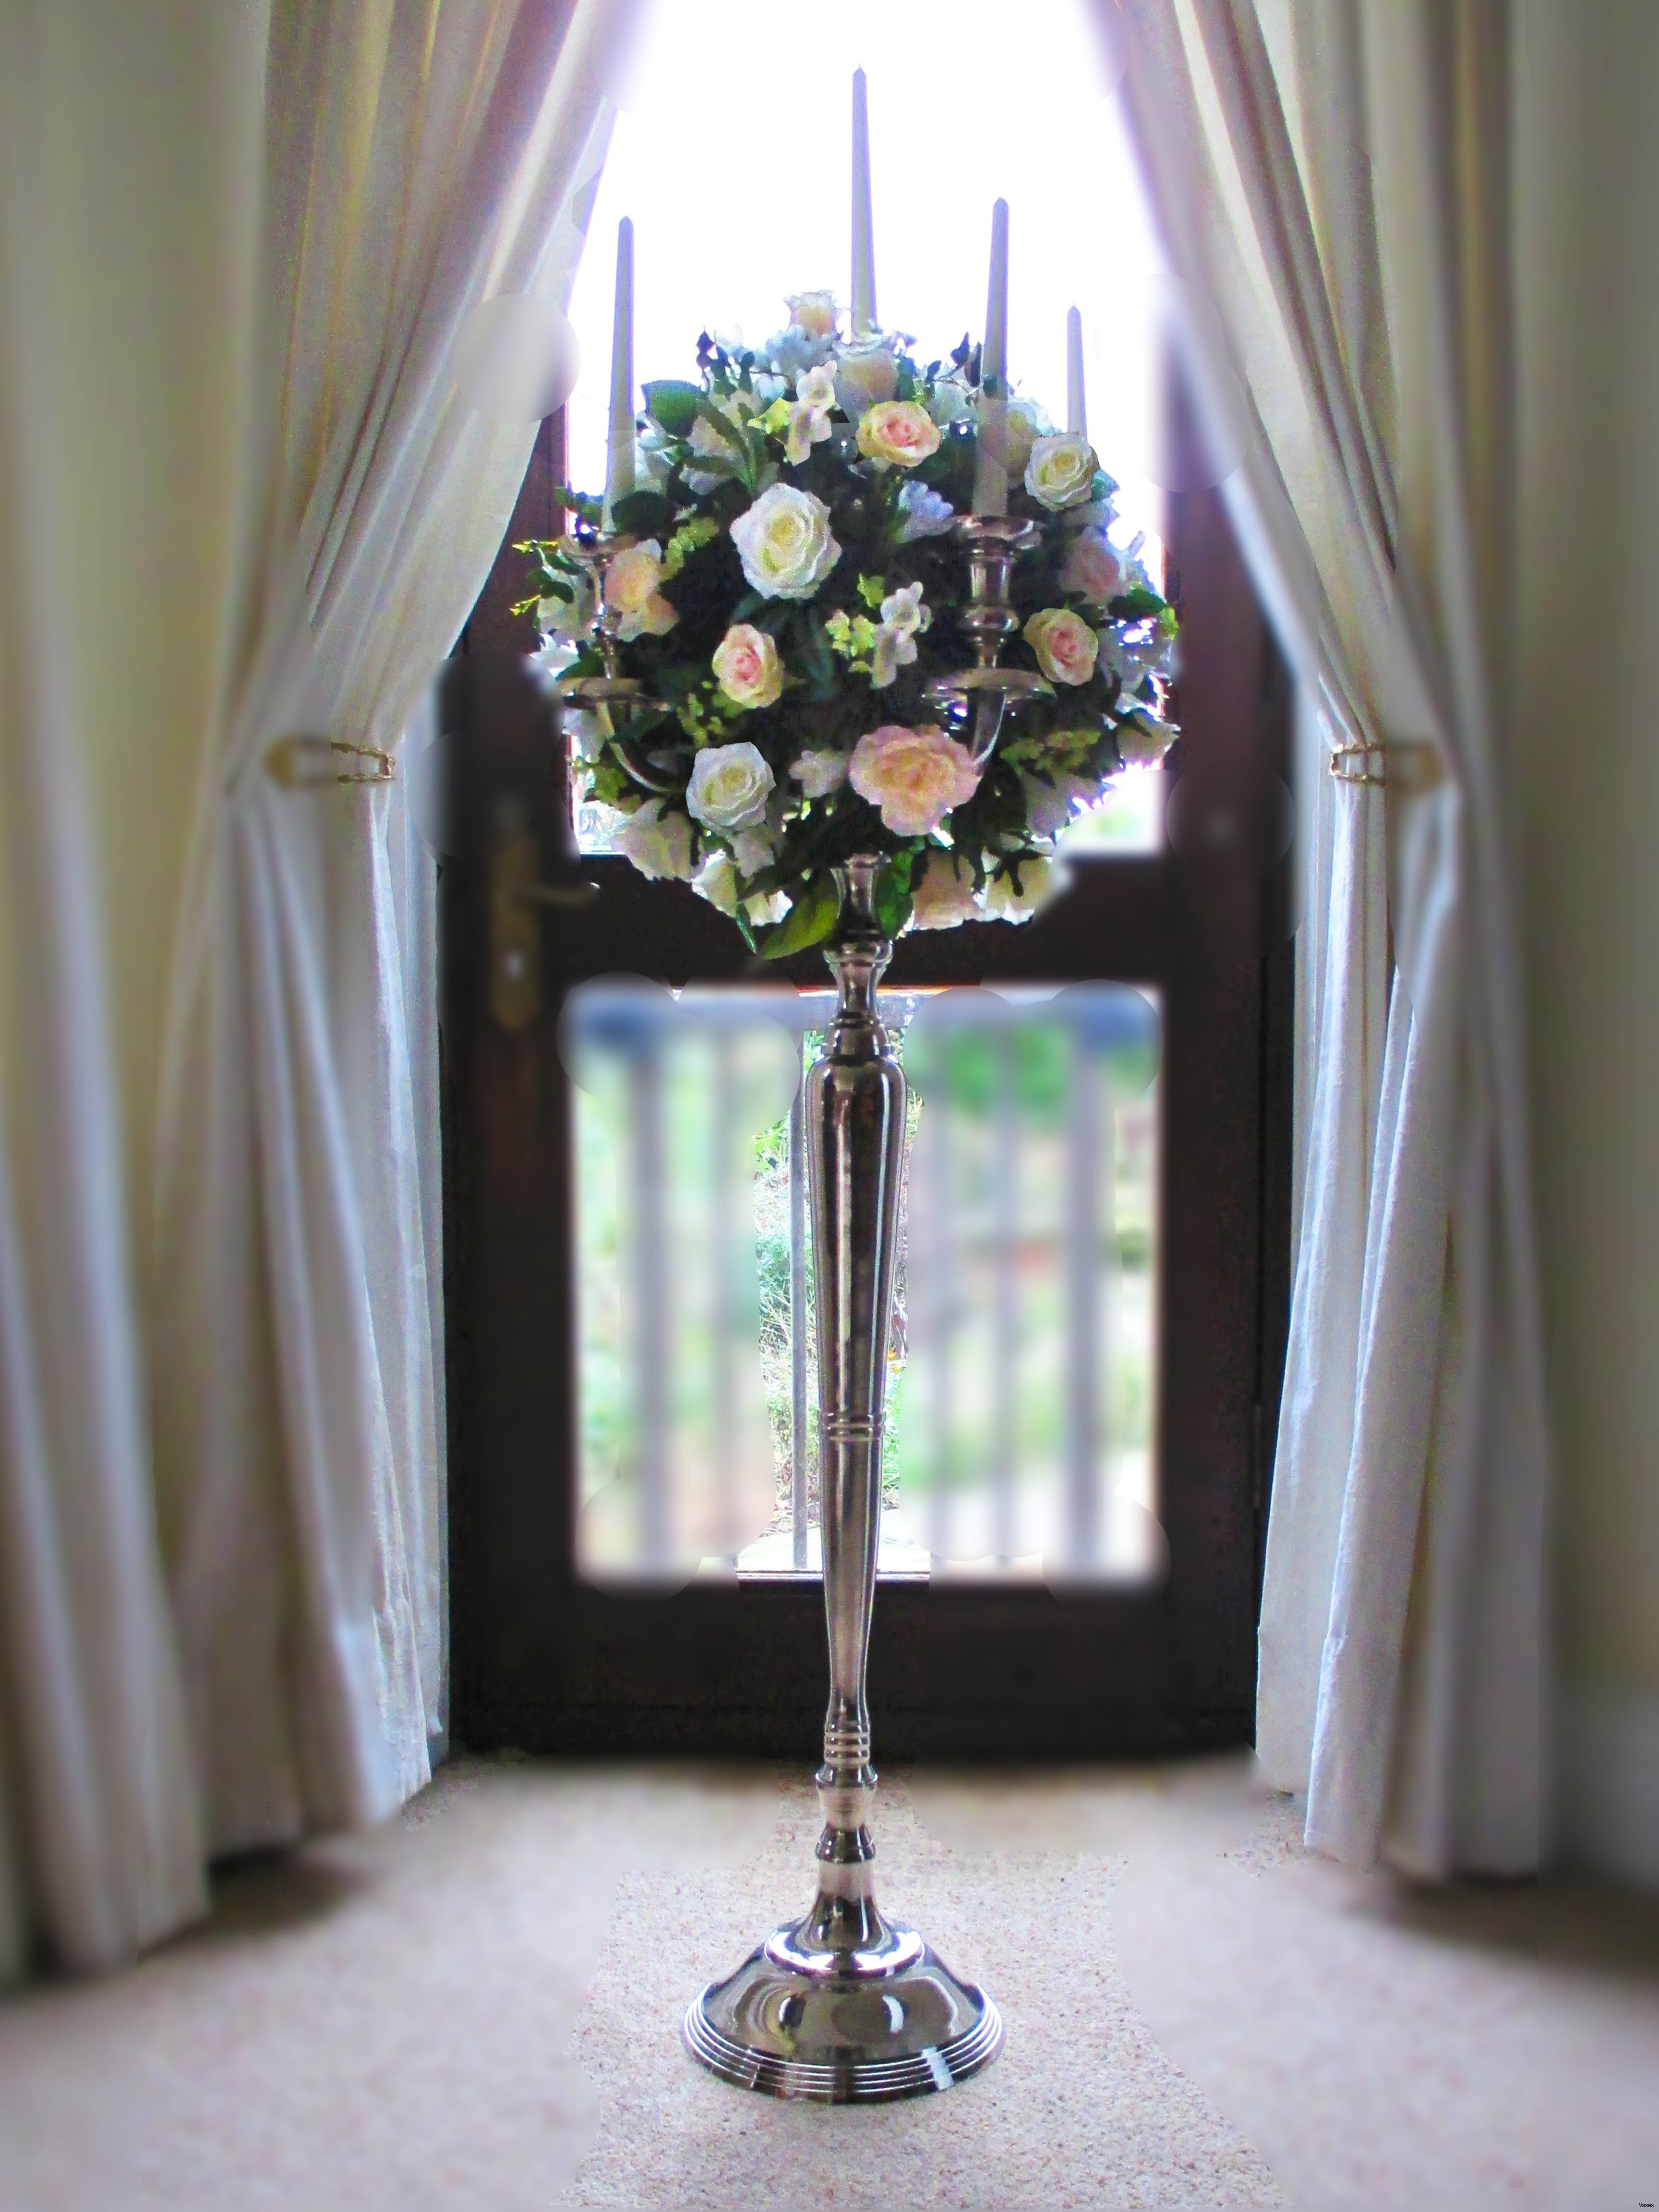 artificial orchids in vase of wedding flowers and decorations elegant 2012 10 12 09 27 47h vases with 22 wedding flowers and decorations wedding flowers and decorations awesome artificial flowers in silver vase beautiful